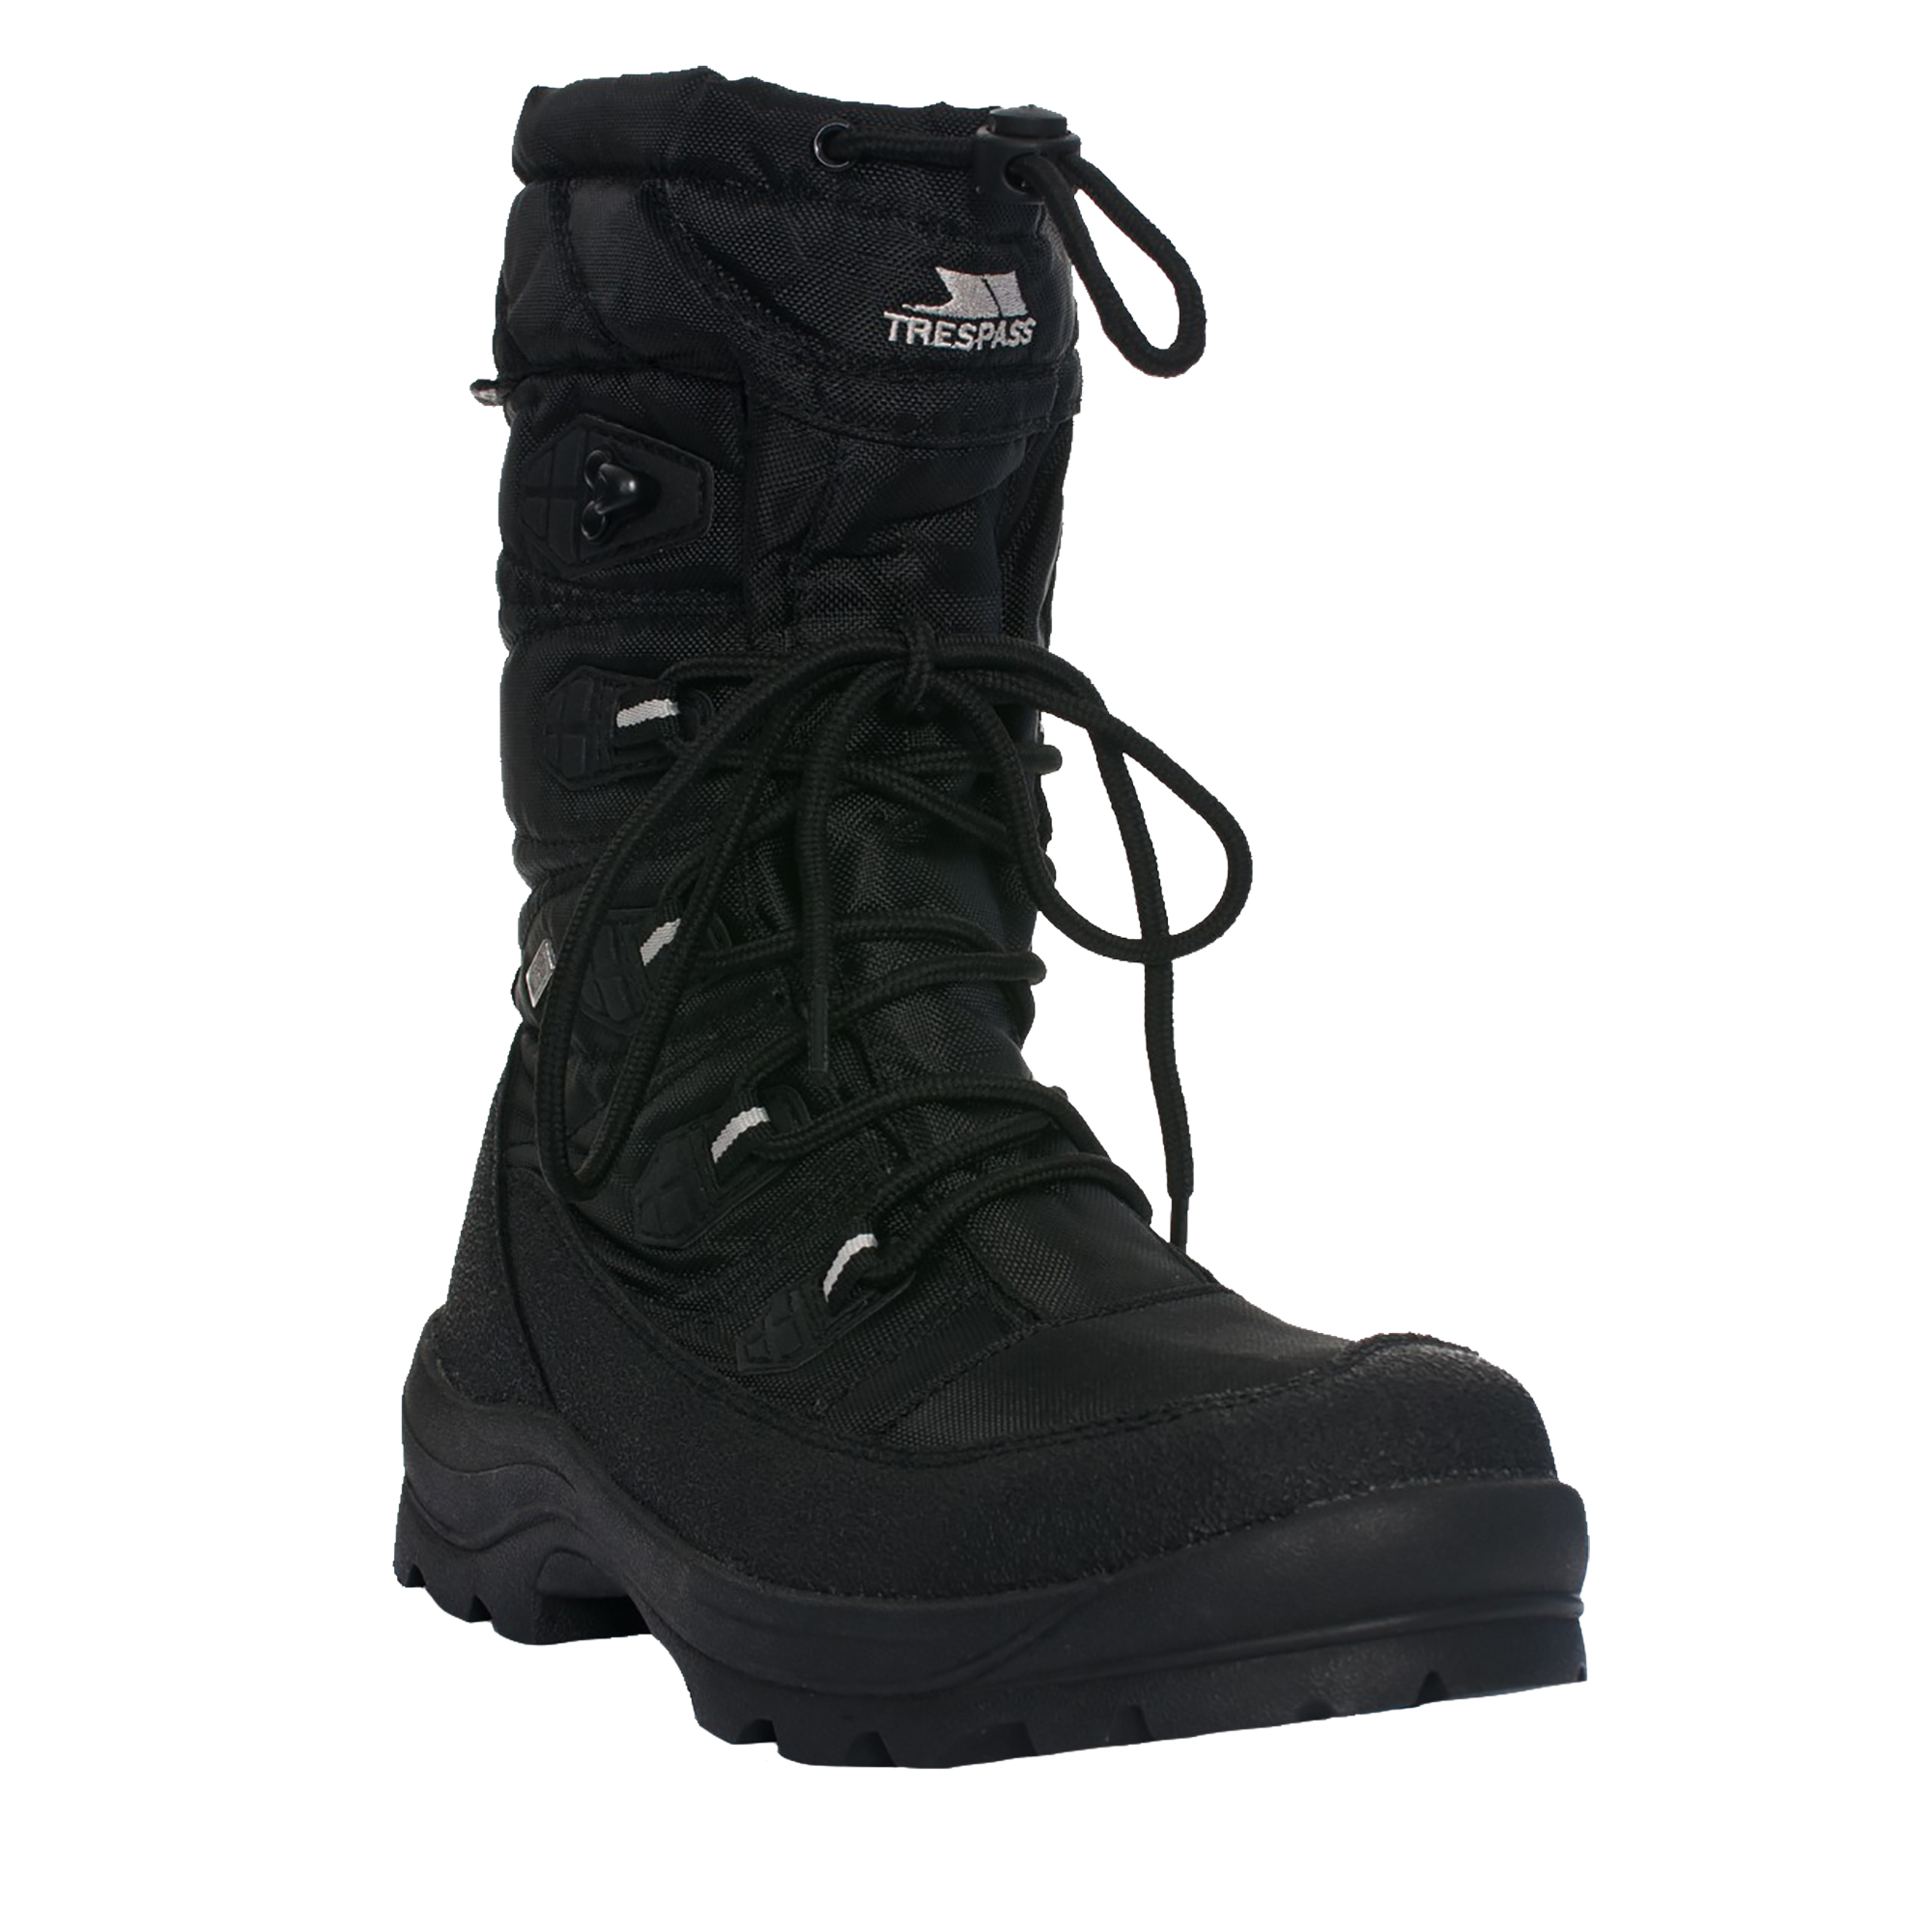 Trespass Mens Yetti Lace Up Snow Boots | eBay